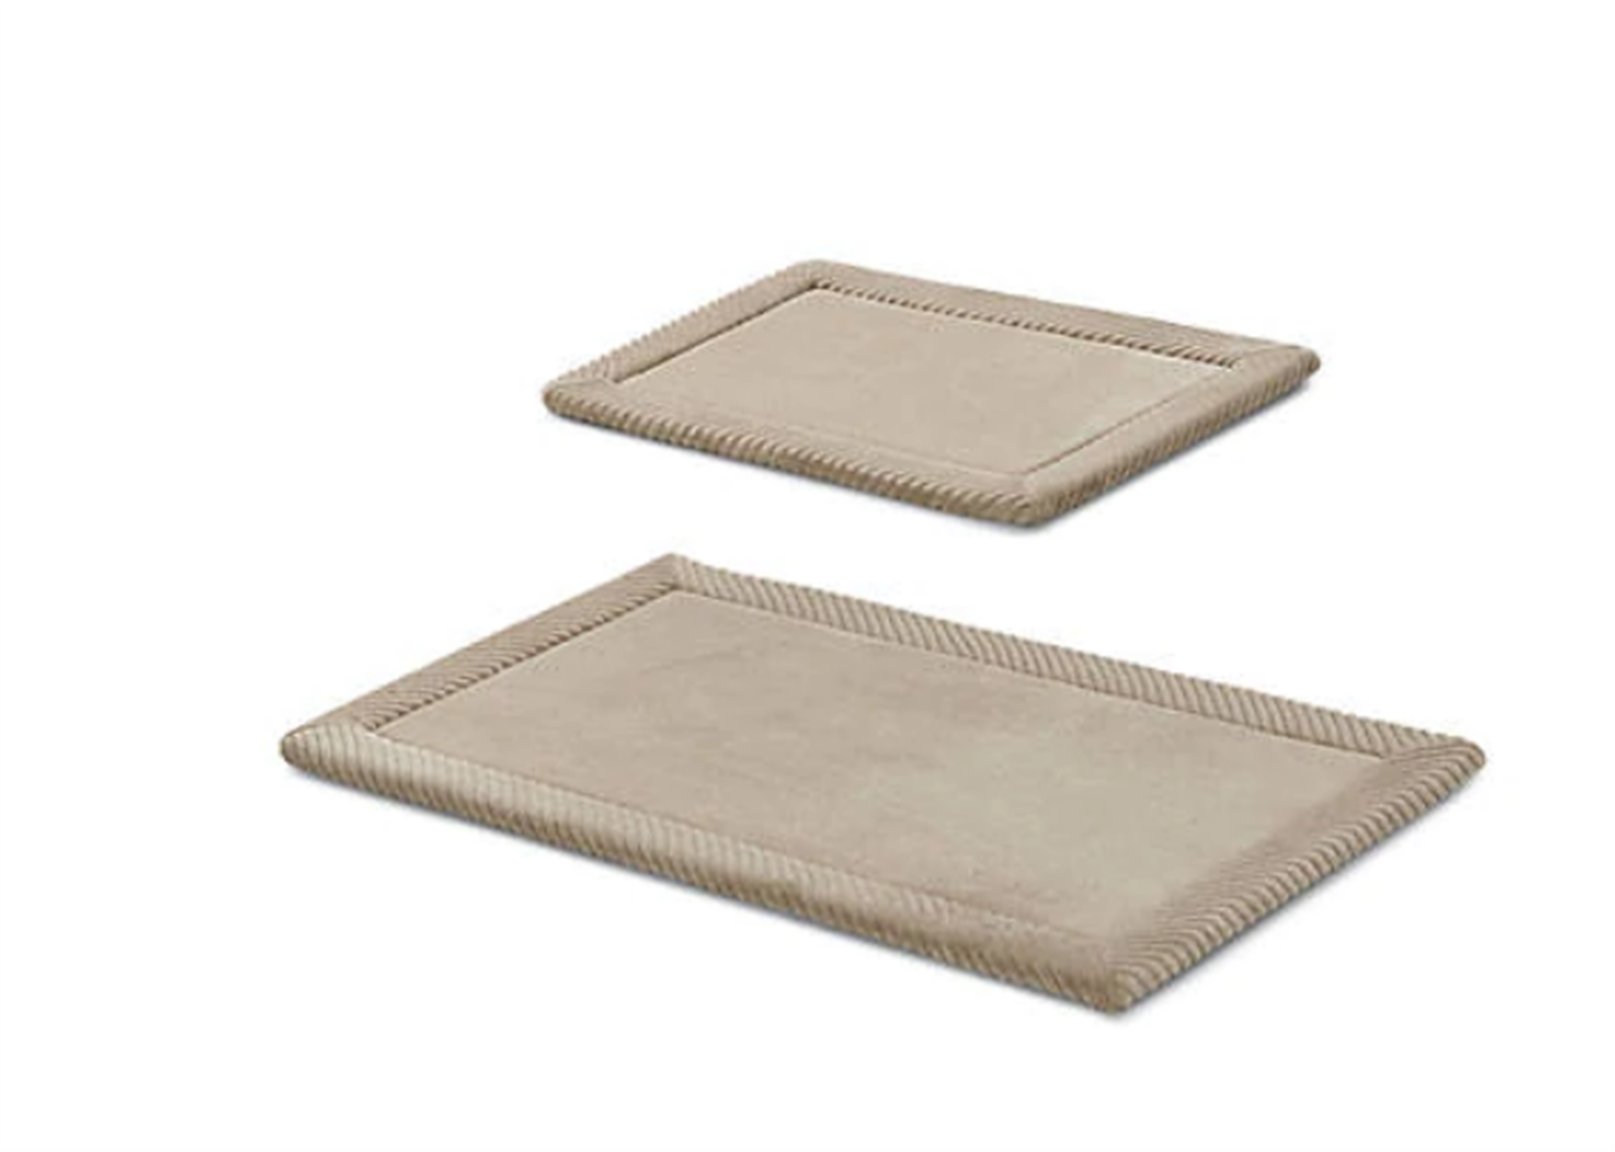 Belk.com – 2-Pk Bathroom Rugs & Mats Only $10, Reg $40 + Free Store Pickup! Memory Foam 2 Pack Rug Set $10!